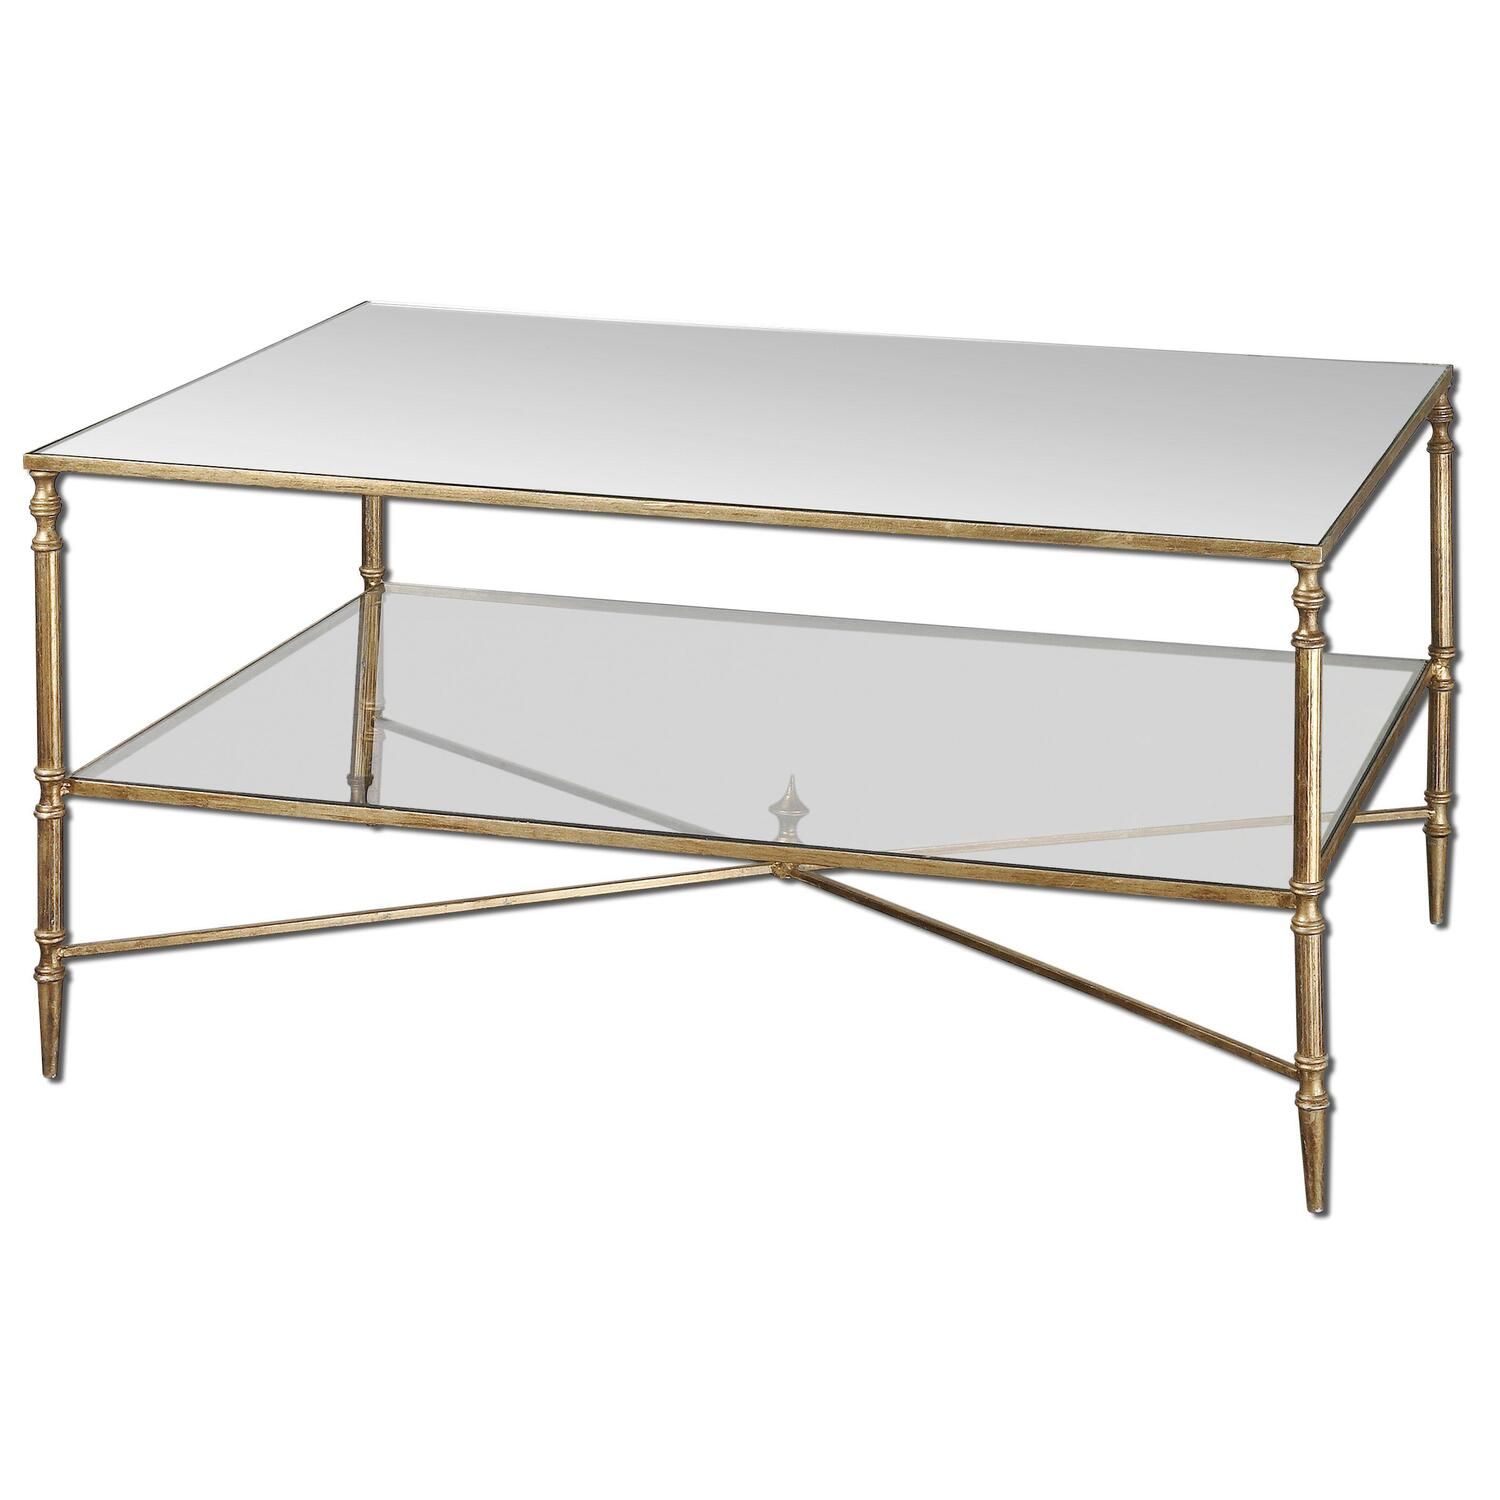 Henzler Mirrored Glass Coffee Table by OJ Commerce 24276  $554.40